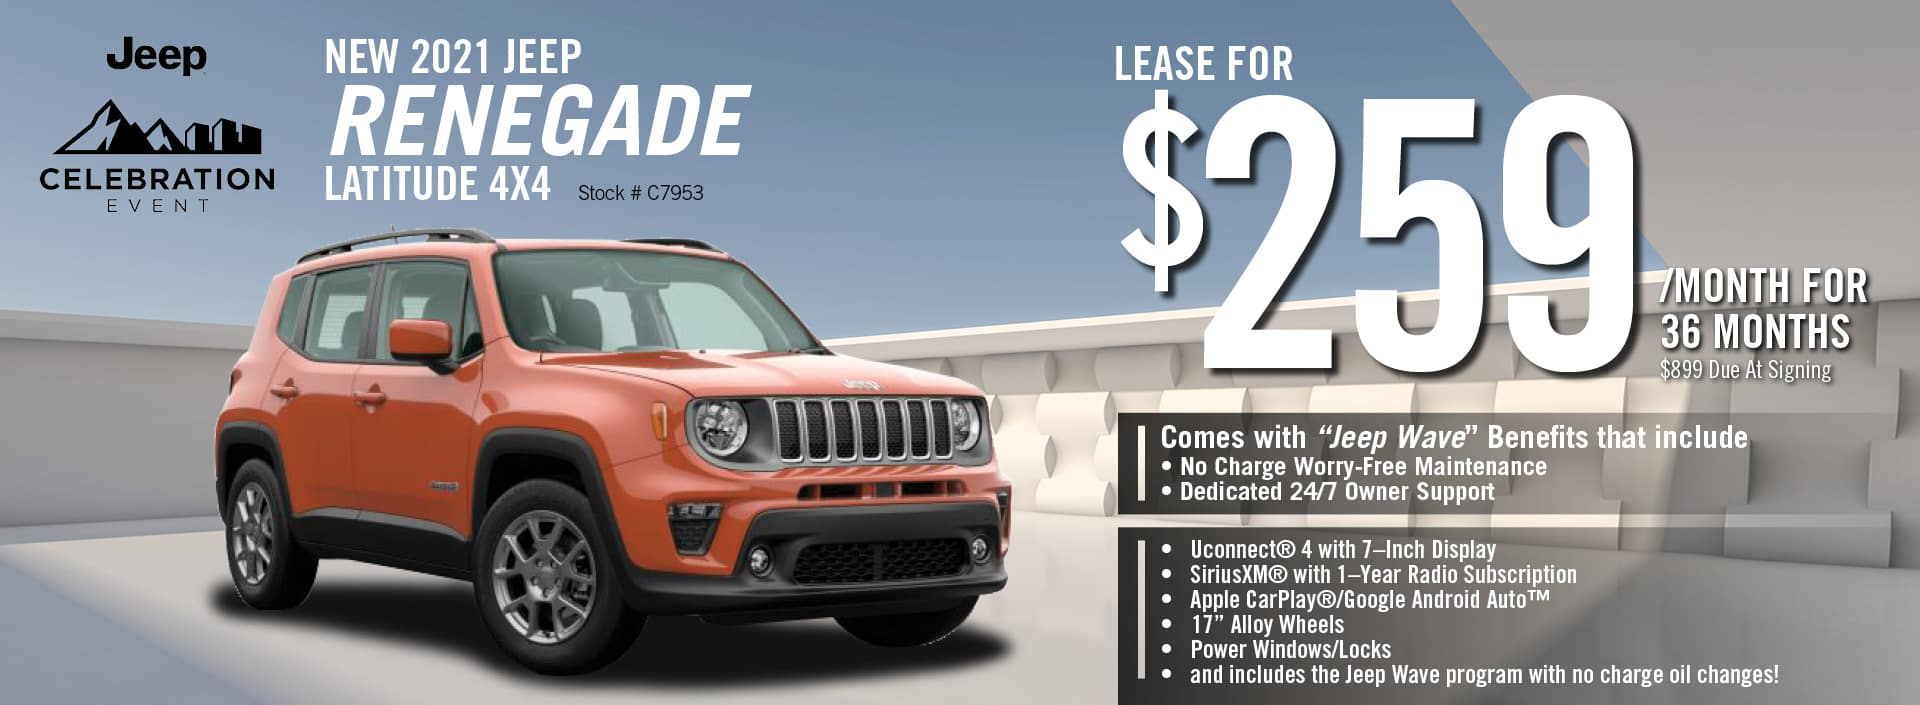 2021 Jeep Renegade Lease Offer | Barre, VT